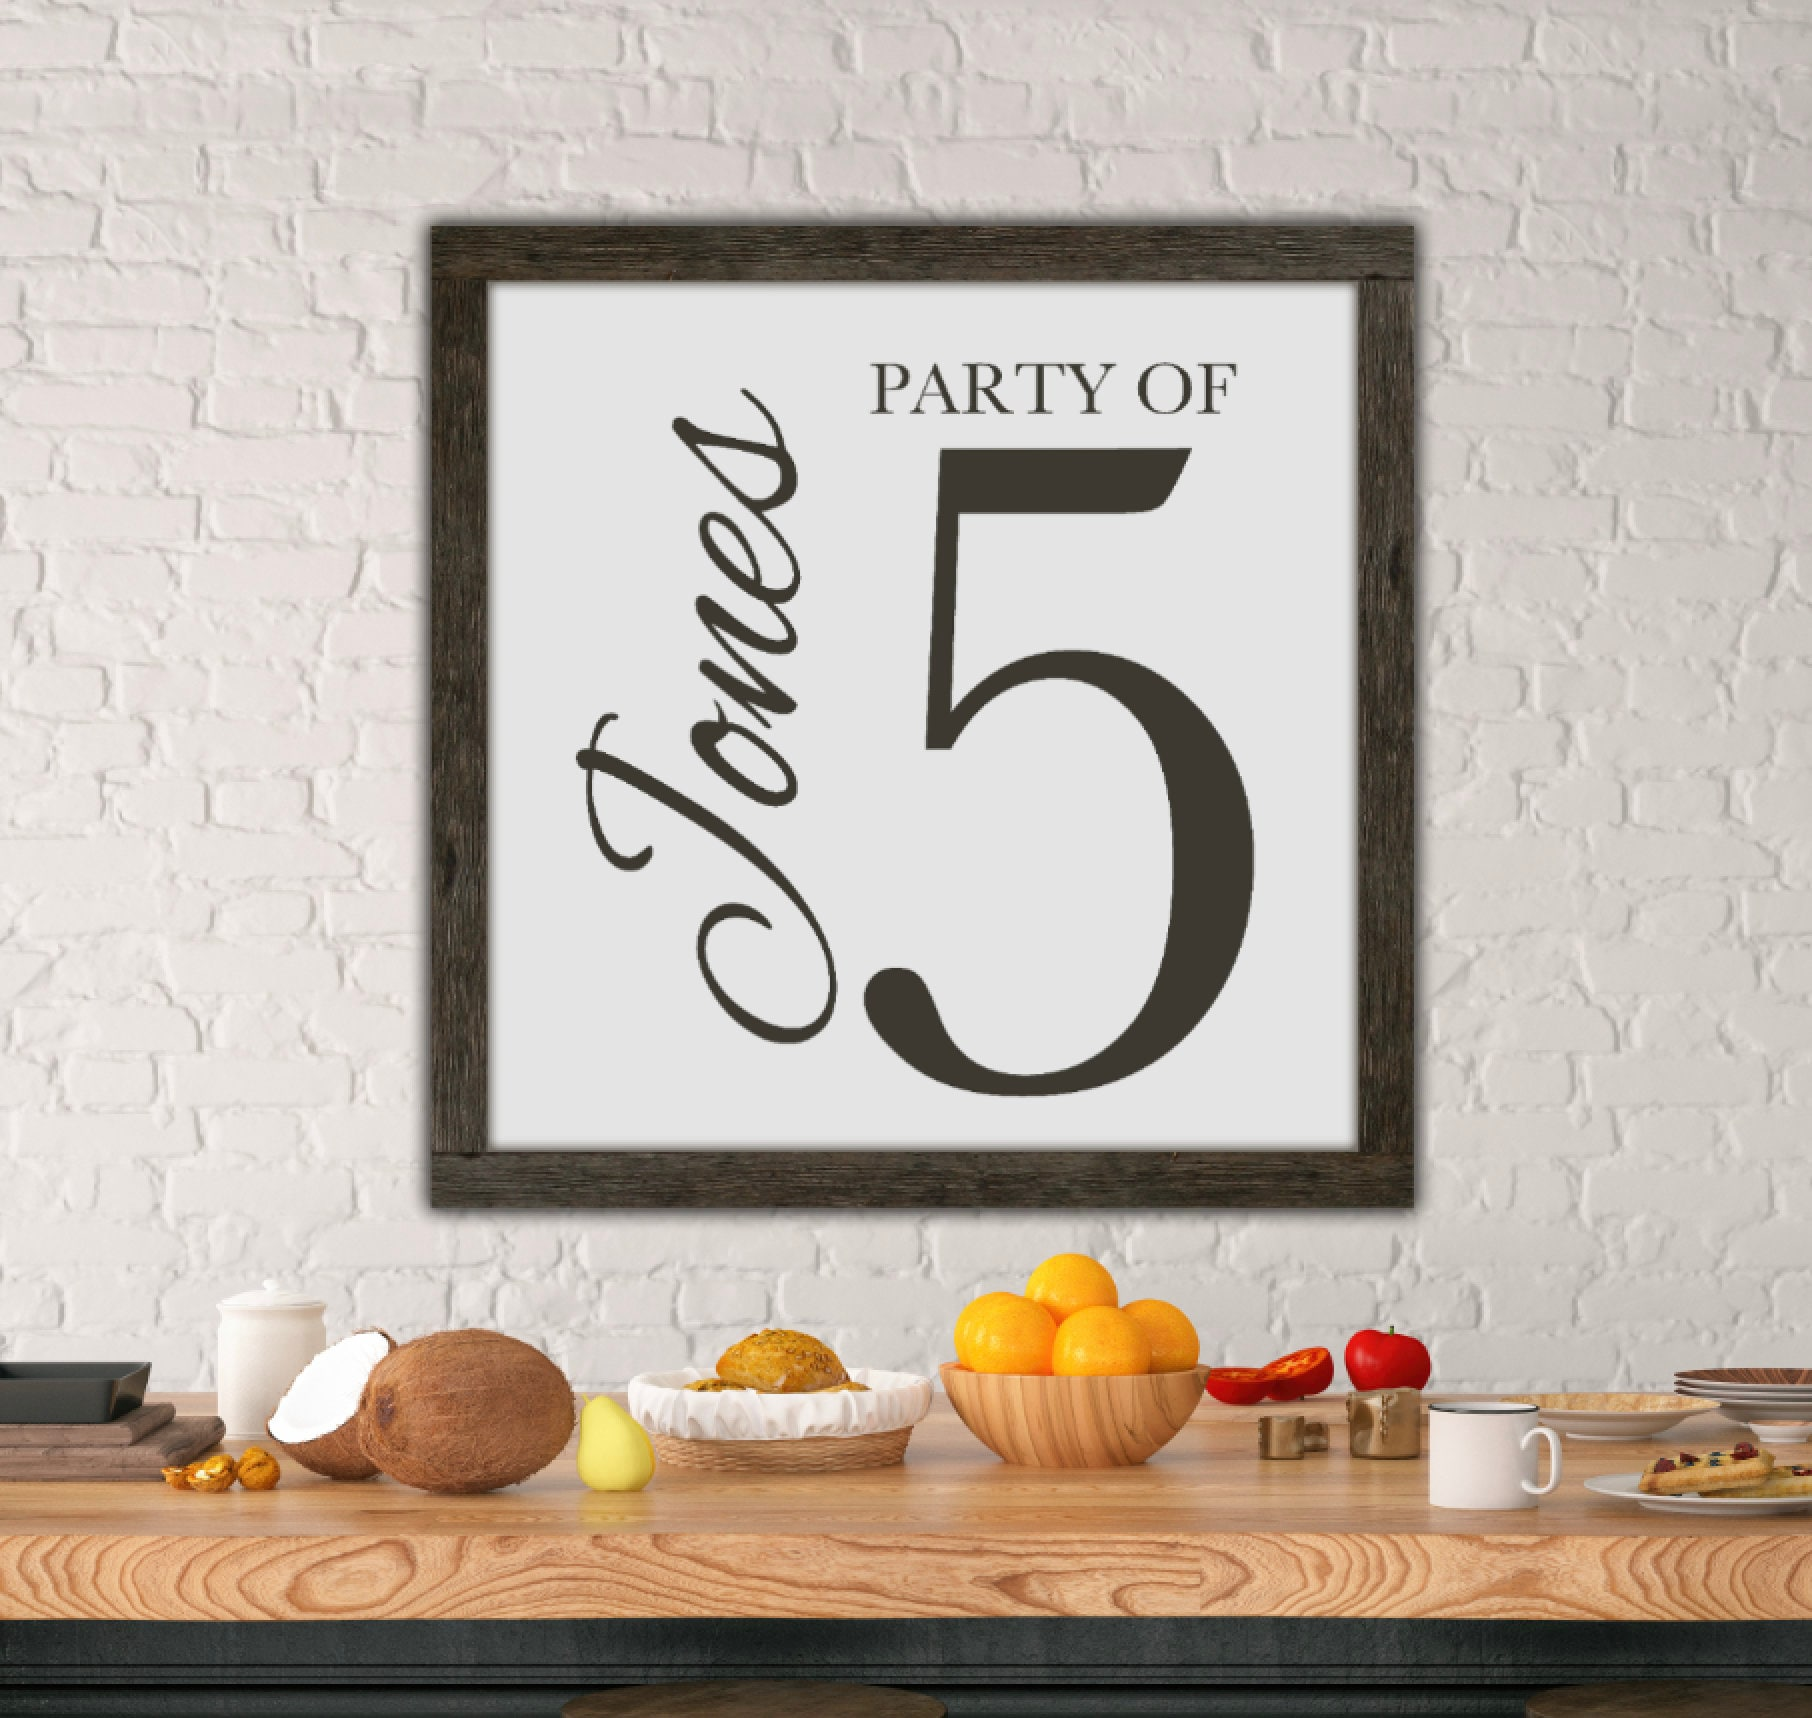 Kitchen Wall Art Party Of Farmhouse White Kitchen Decor Kitchen Farmhouse Sign Farmhouse Kitchen Canvas Custom Art Canvas